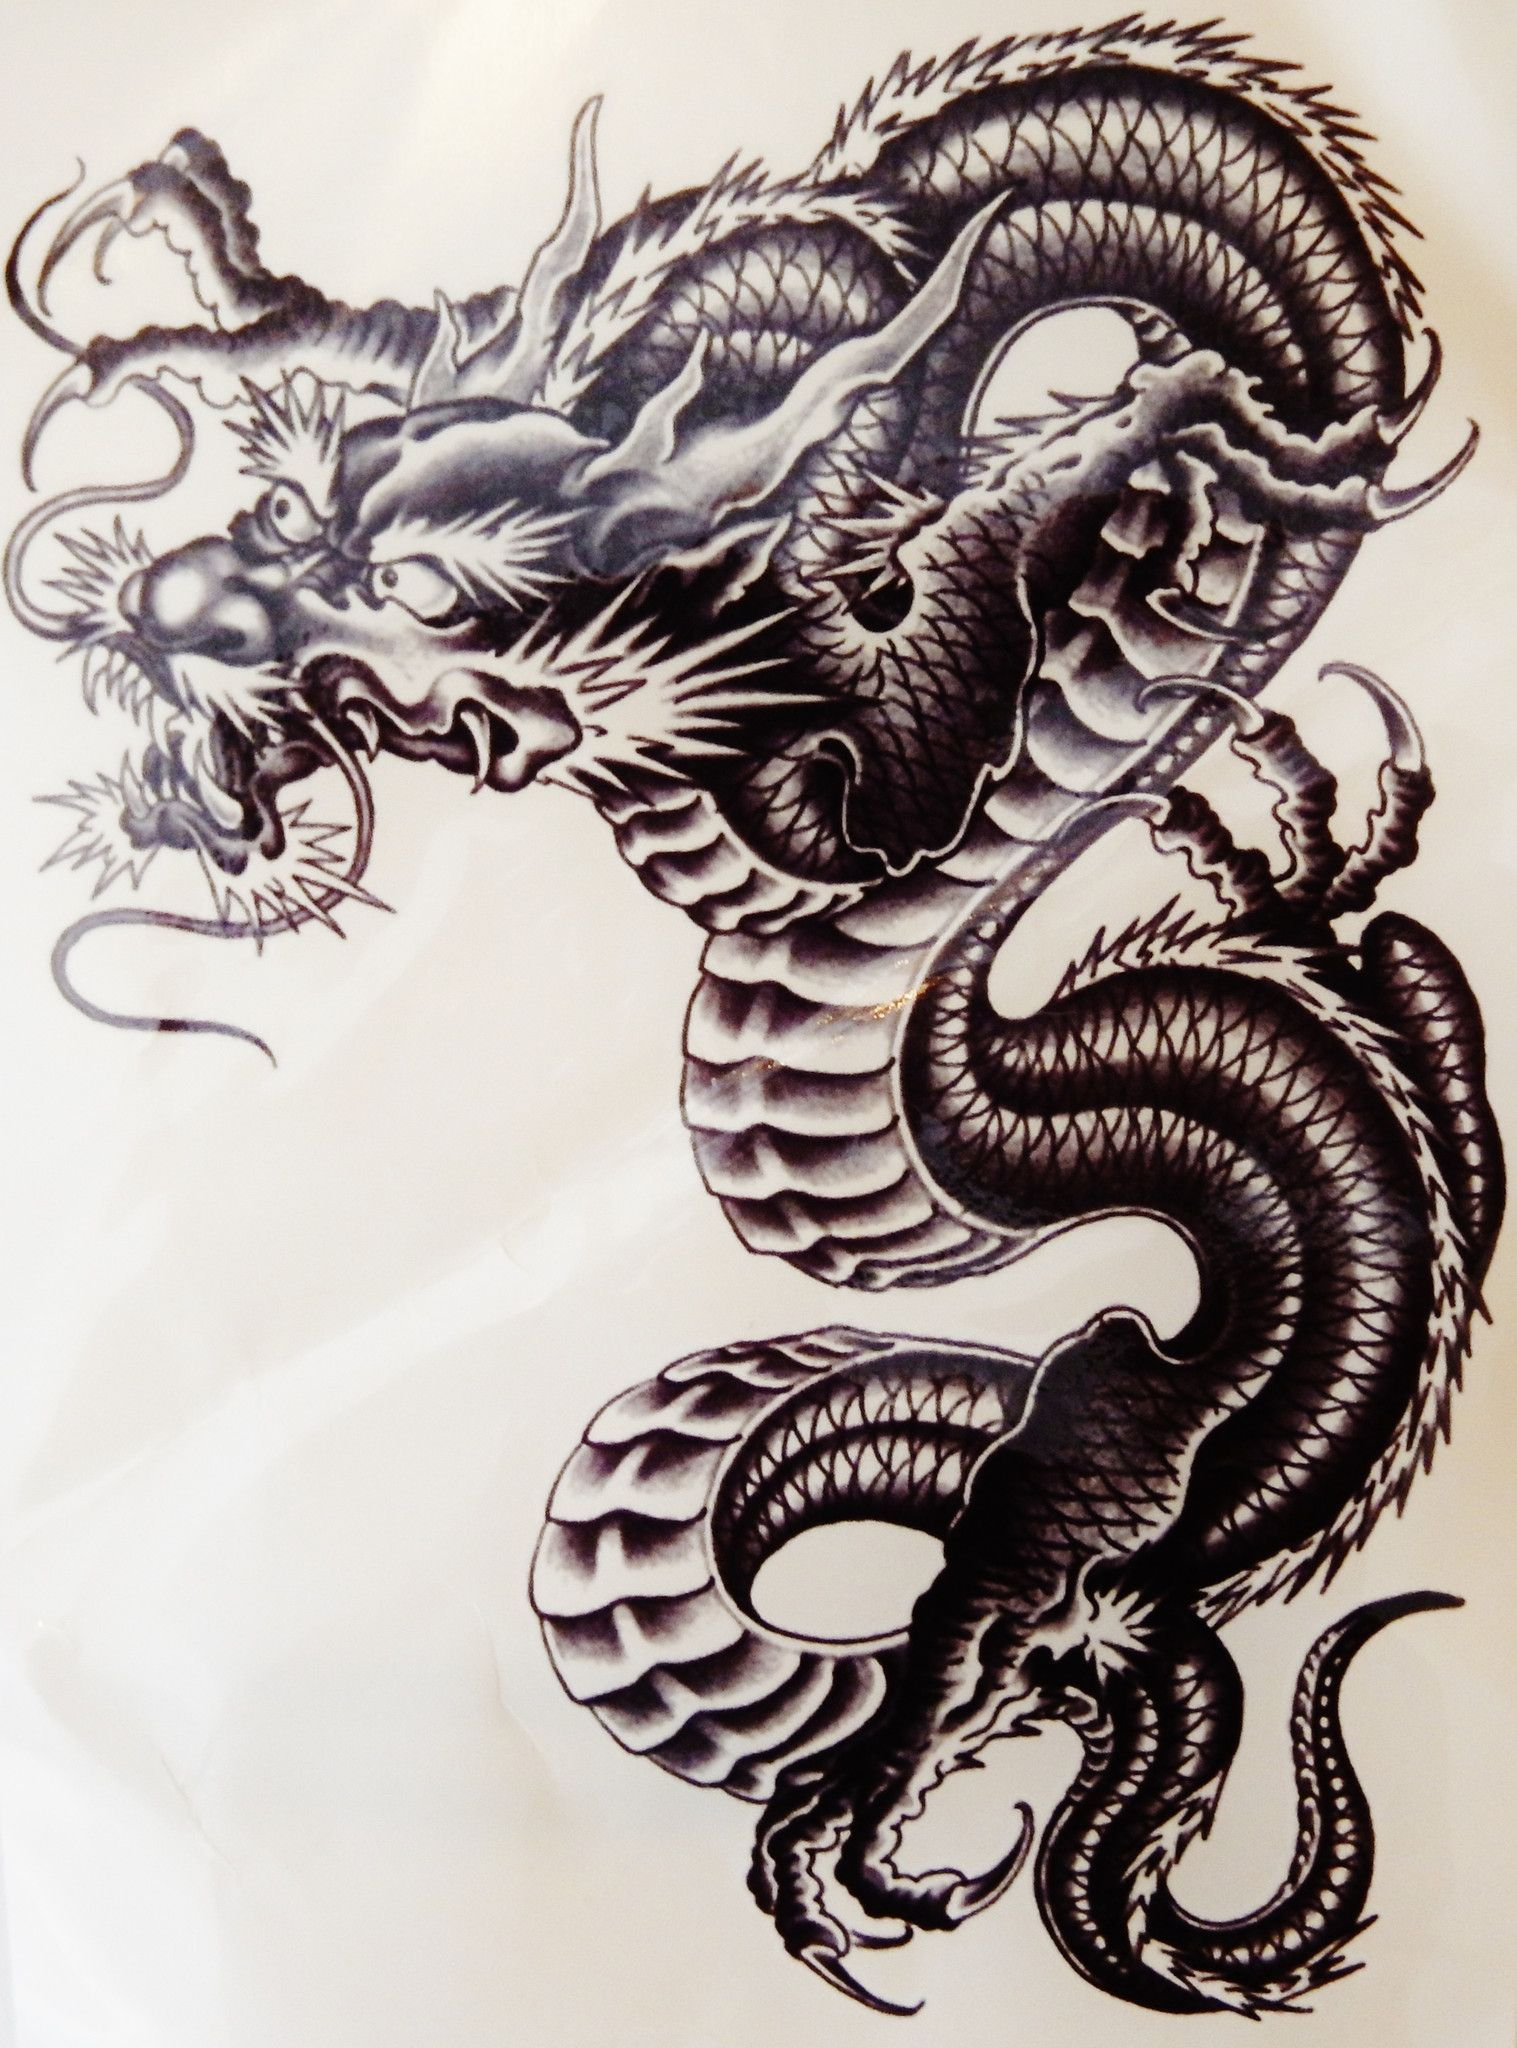 9bef1bdc987e3 Large Awesome Black Dragon Temporary Tattoo | Tips | Dragon tattoo ...